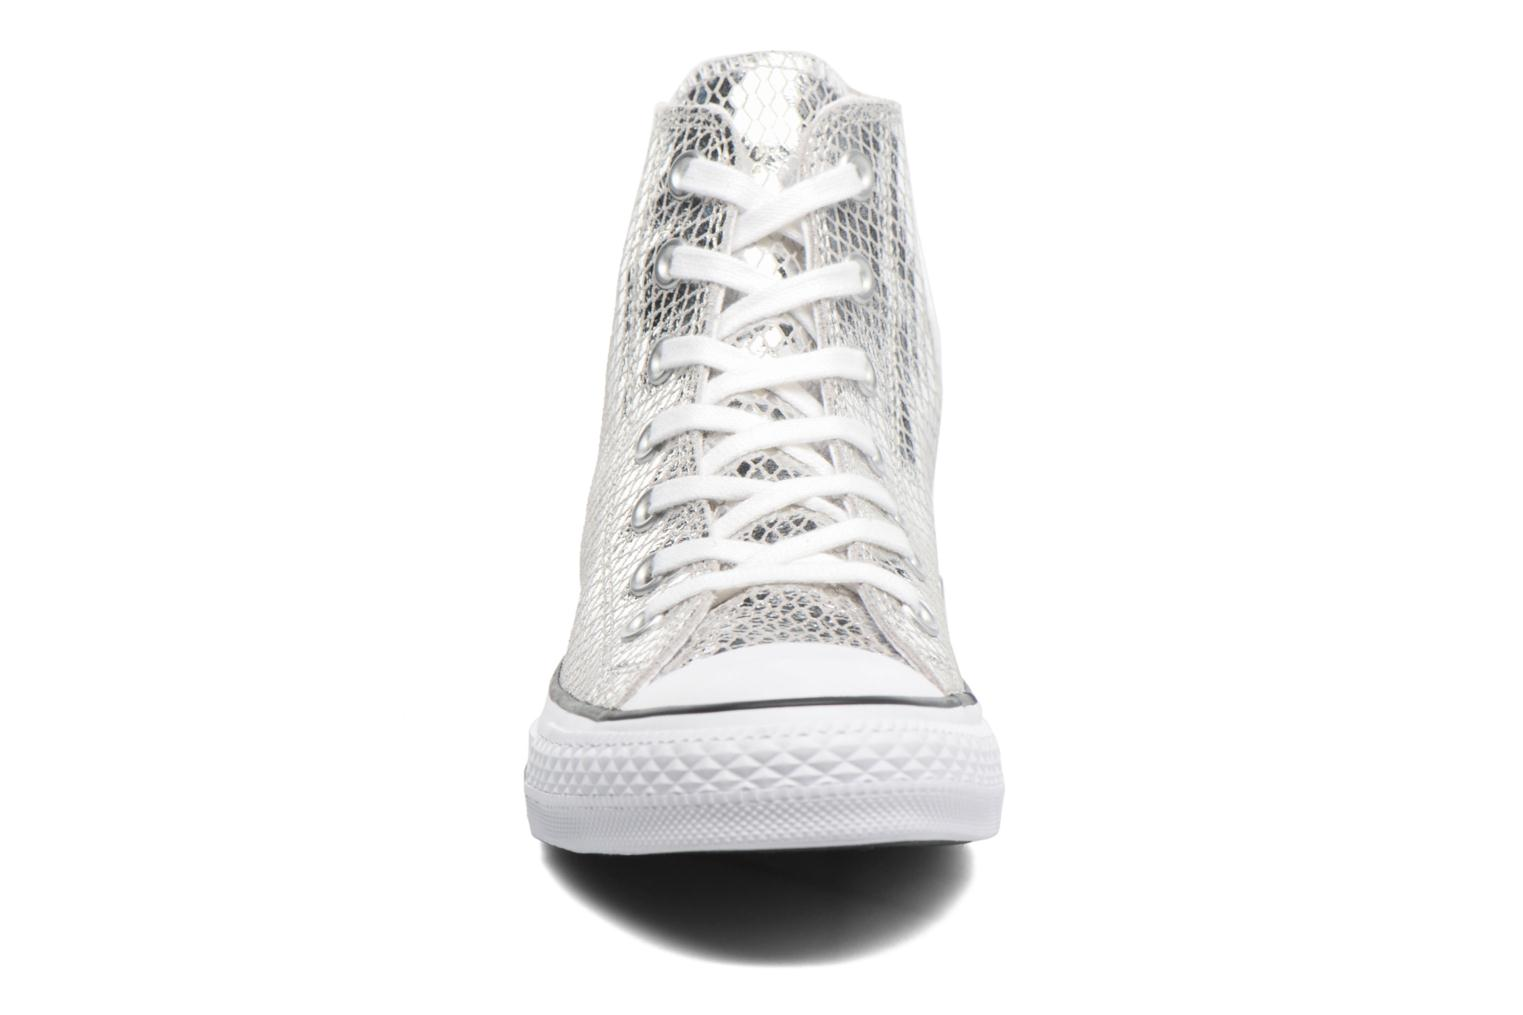 Chuck Taylor All Star Hi Metallic Snake Leather Silver/Black/White